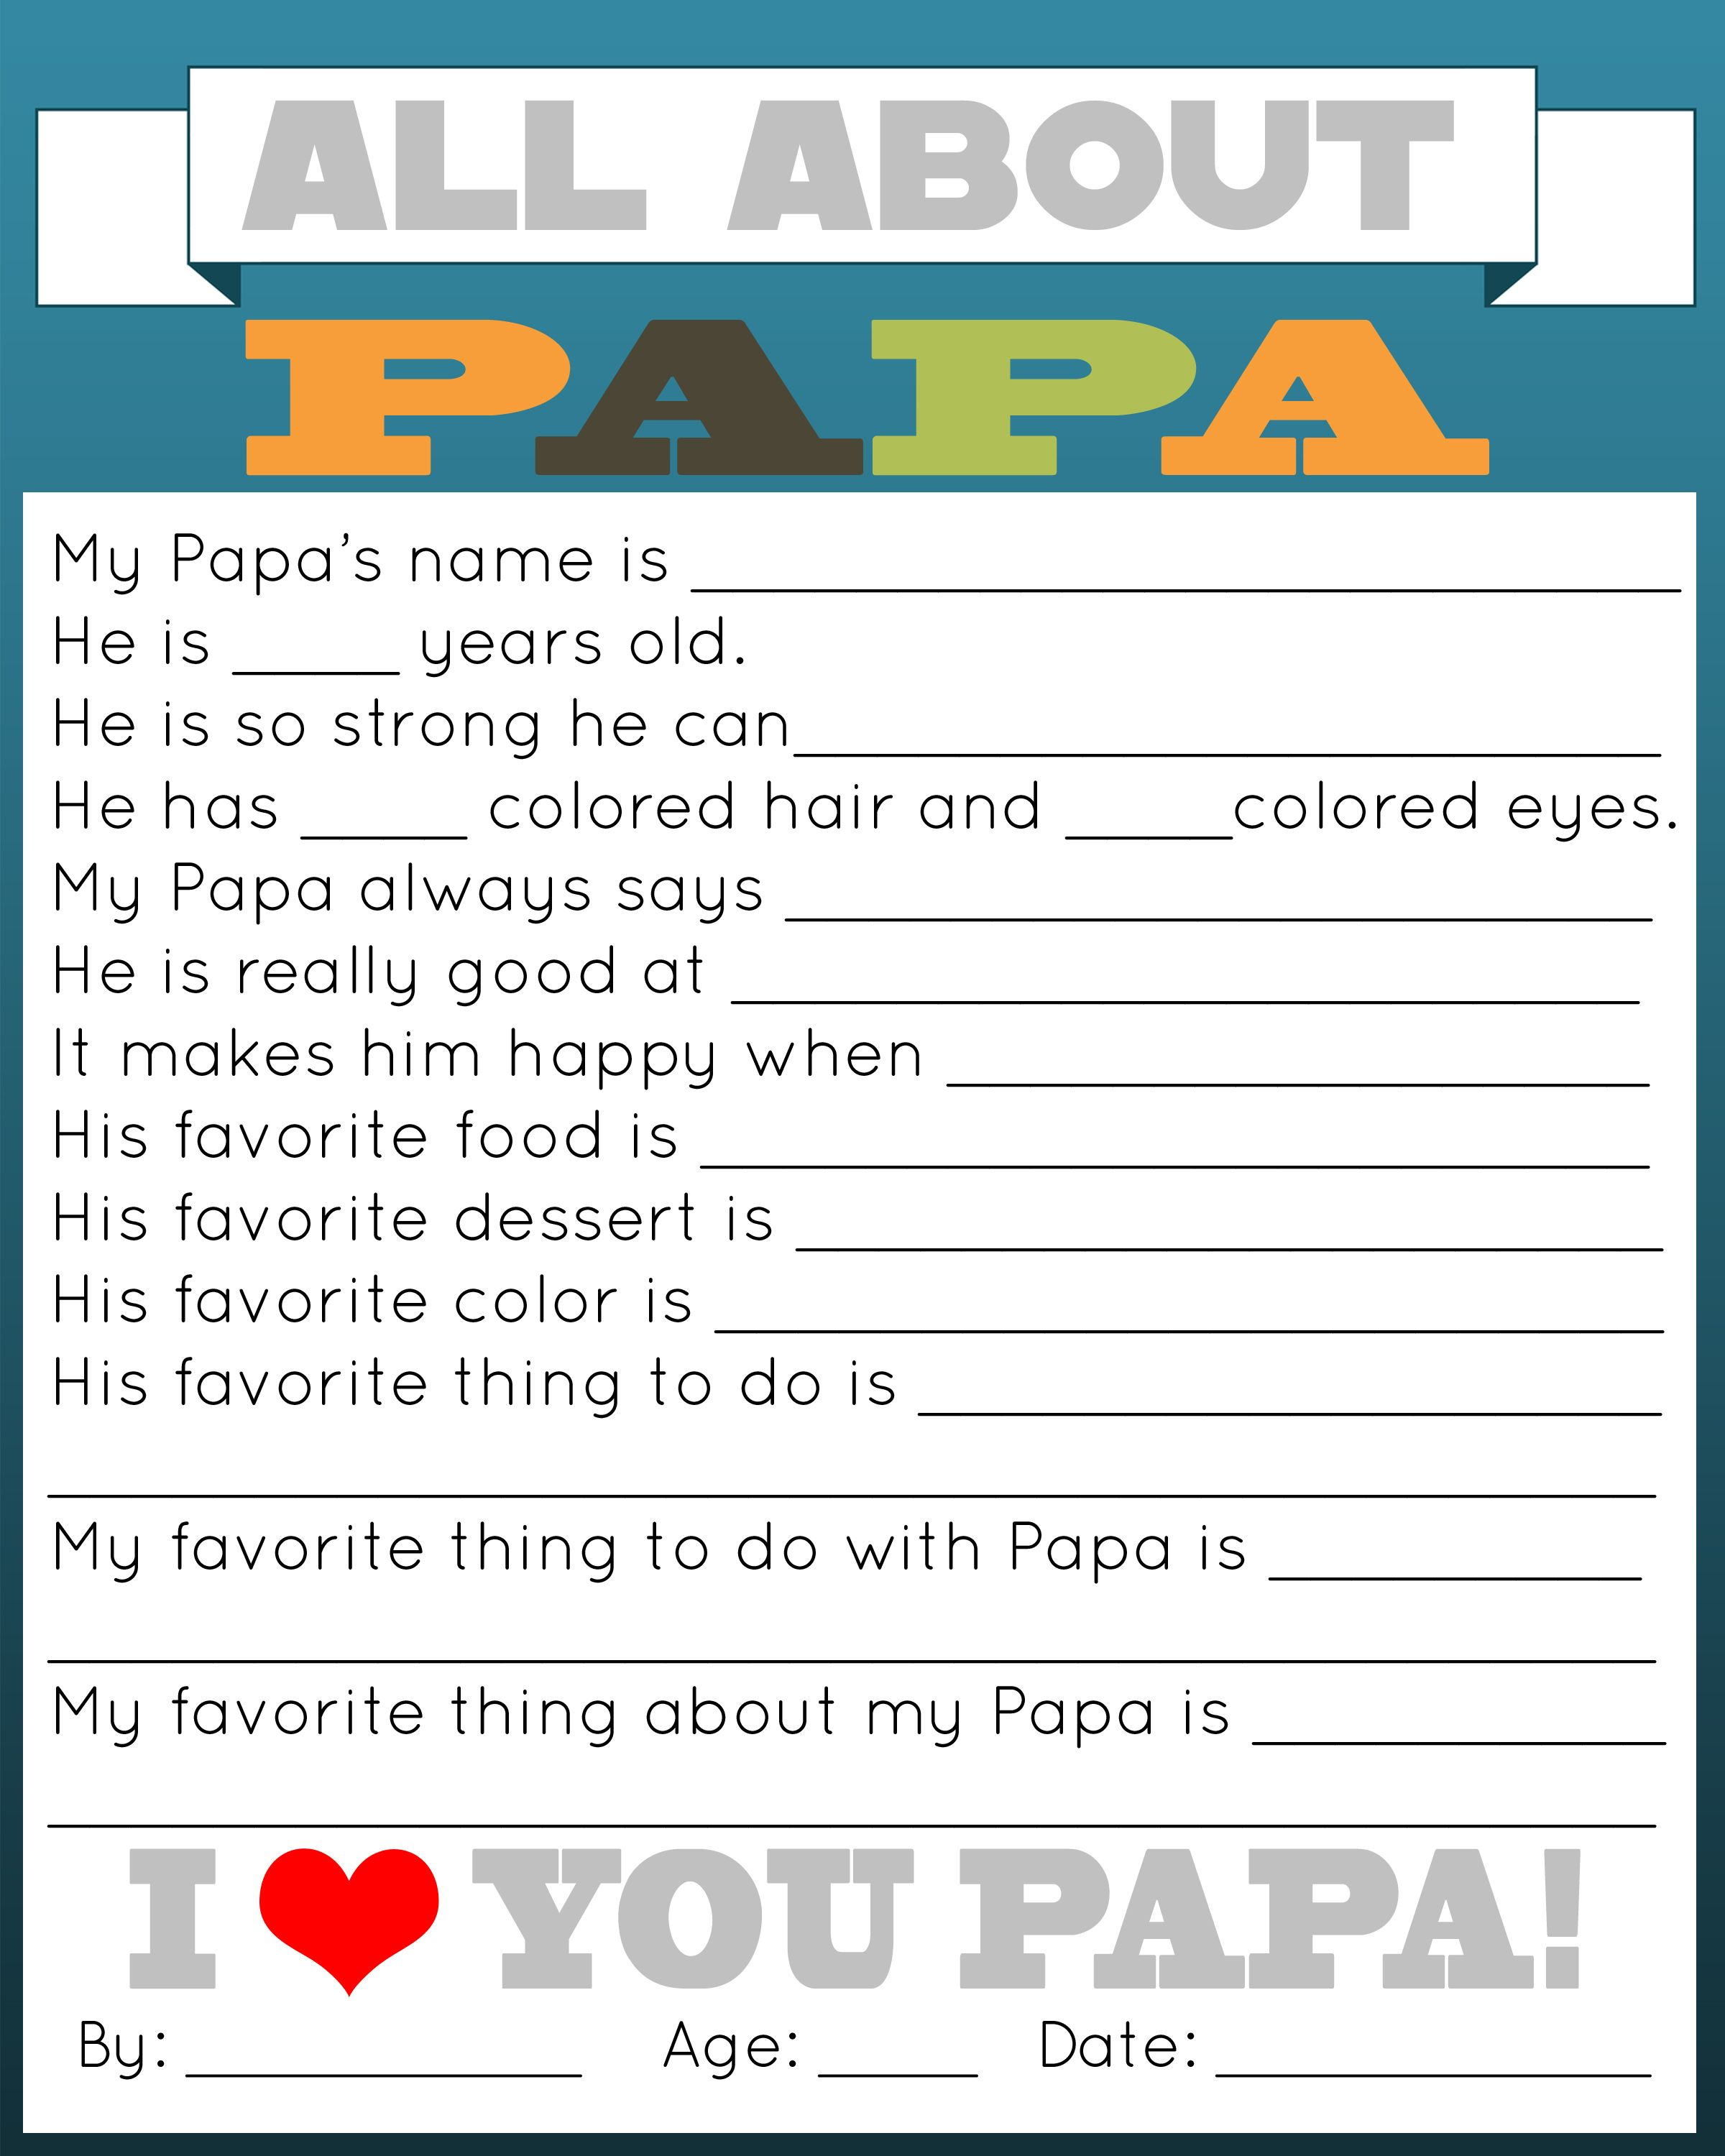 image regarding All About My Papa Printable called All Concerning Daddy Printable Daddys Working day! Grandpa birthday